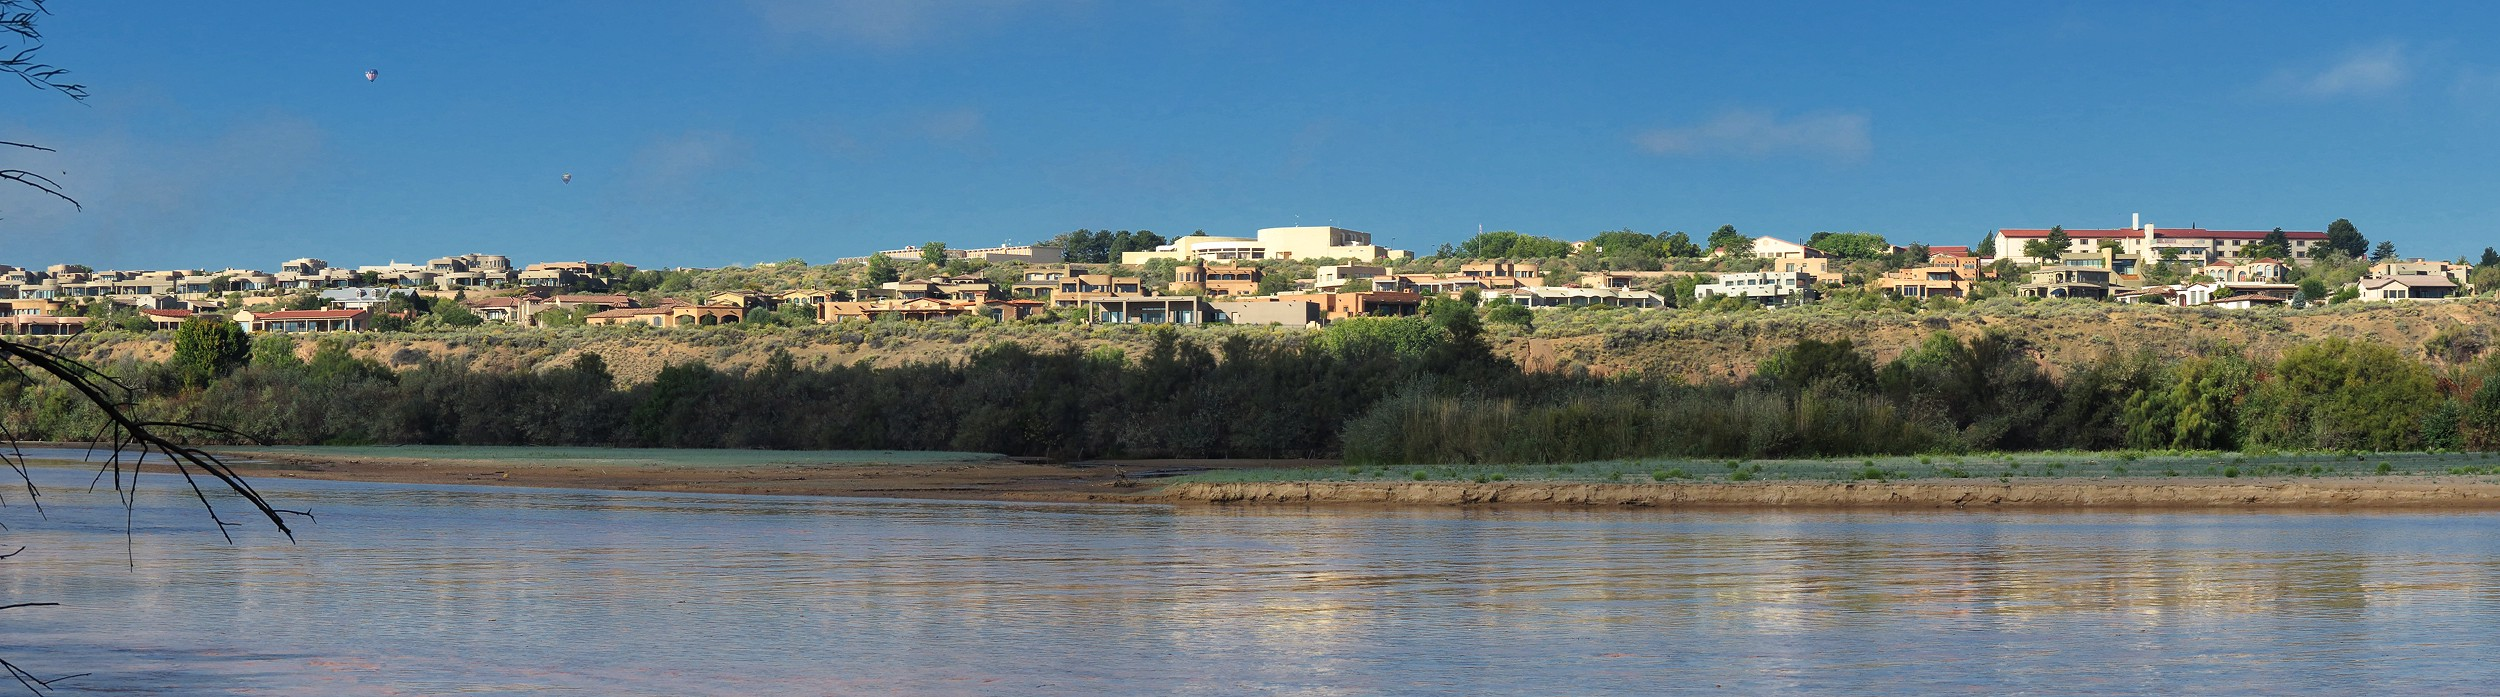 Development is already dense on the west bank of the Rio Grande in Albuquerque.